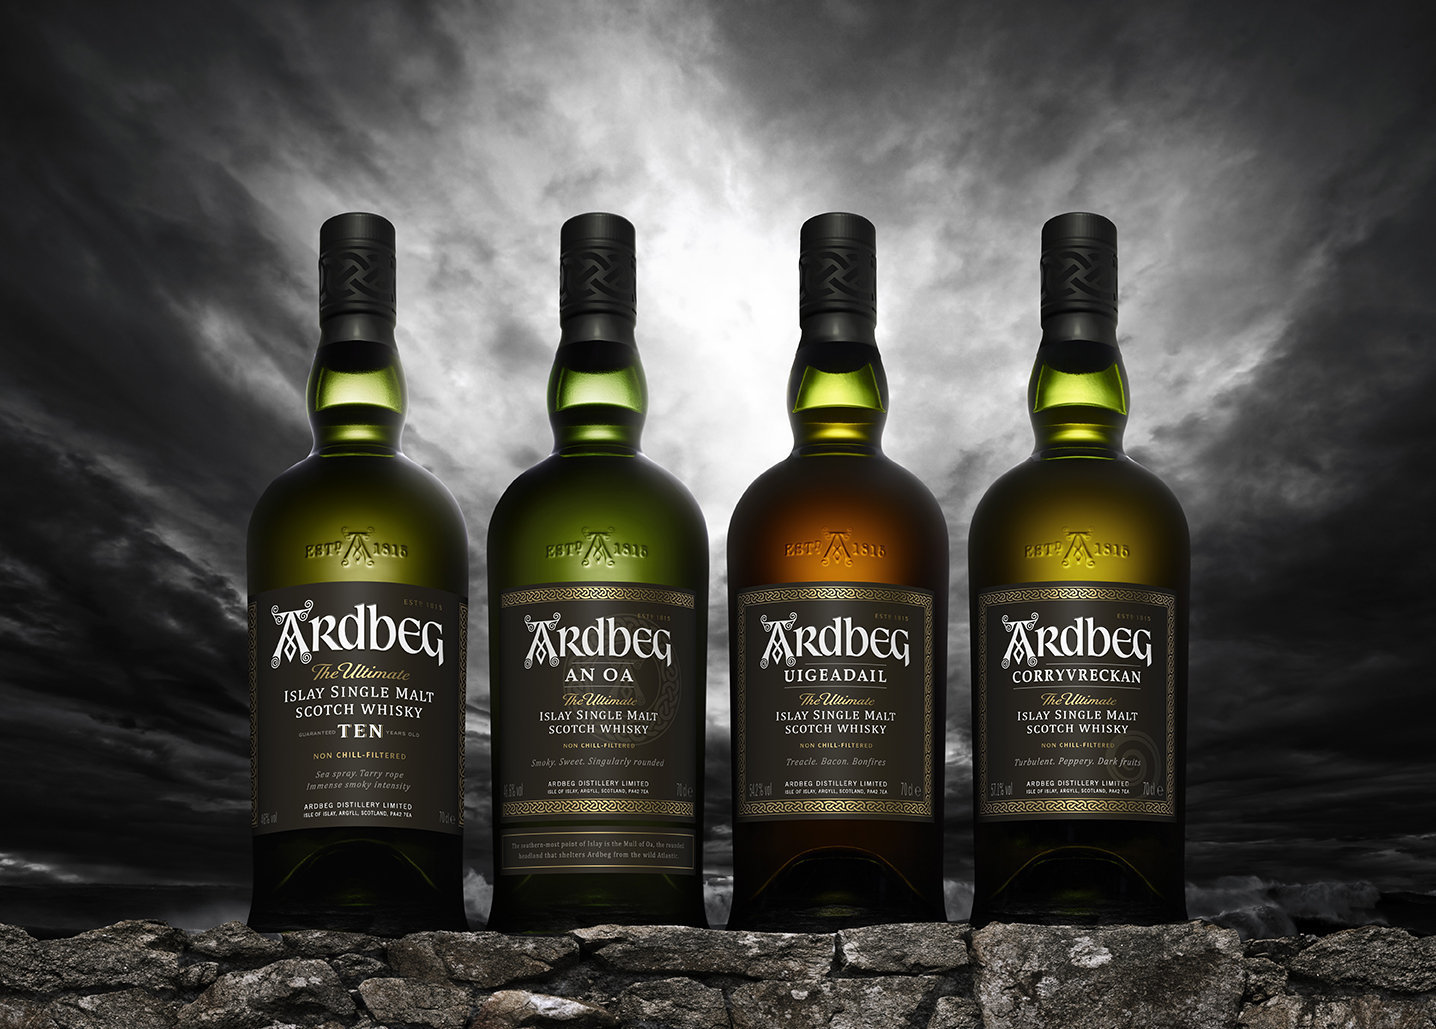 The expansion will allow Ardbeg to cater to its growing global fan base